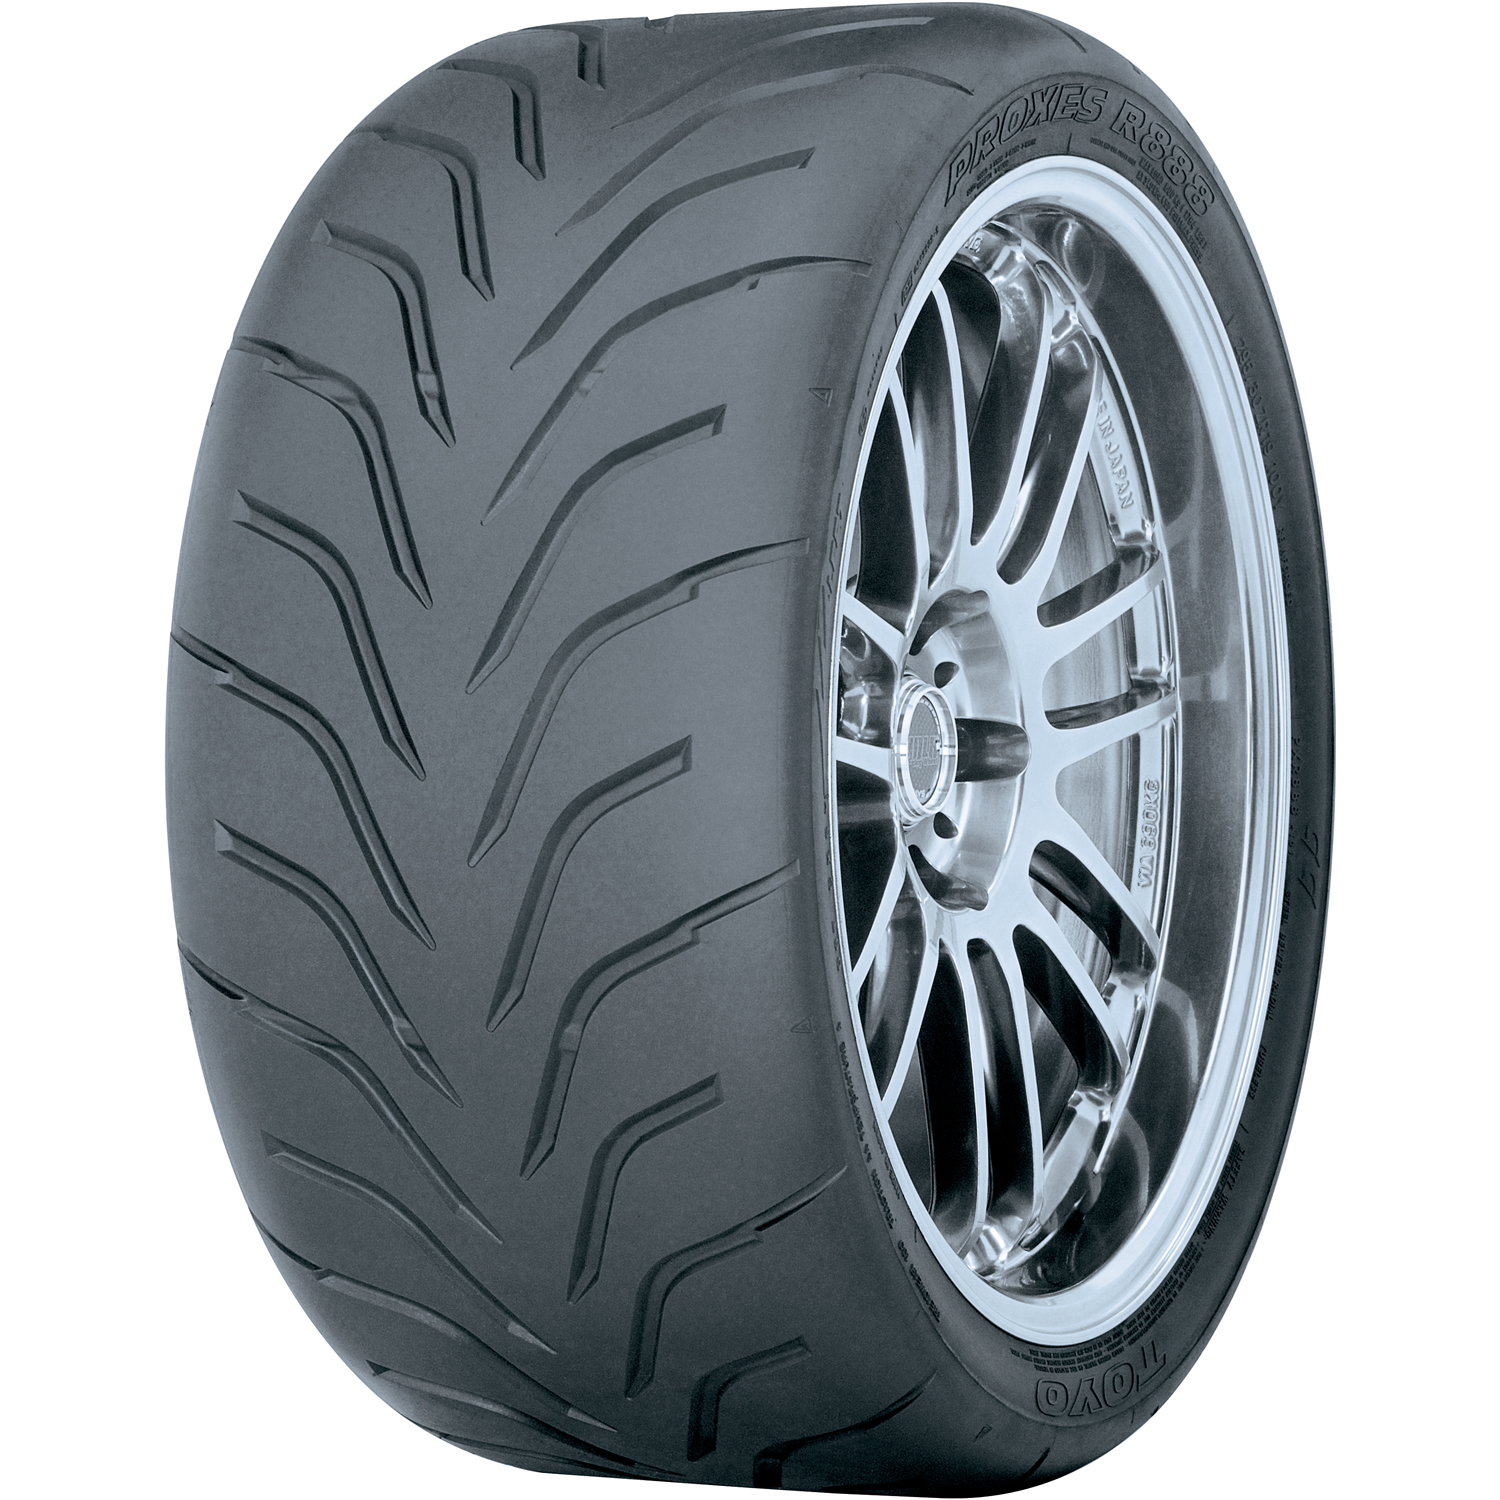 Toyo Proxes R888 >> Details About 1 New 235 35zr19 Toyo Proxes R888 87y Competition Tires 162850